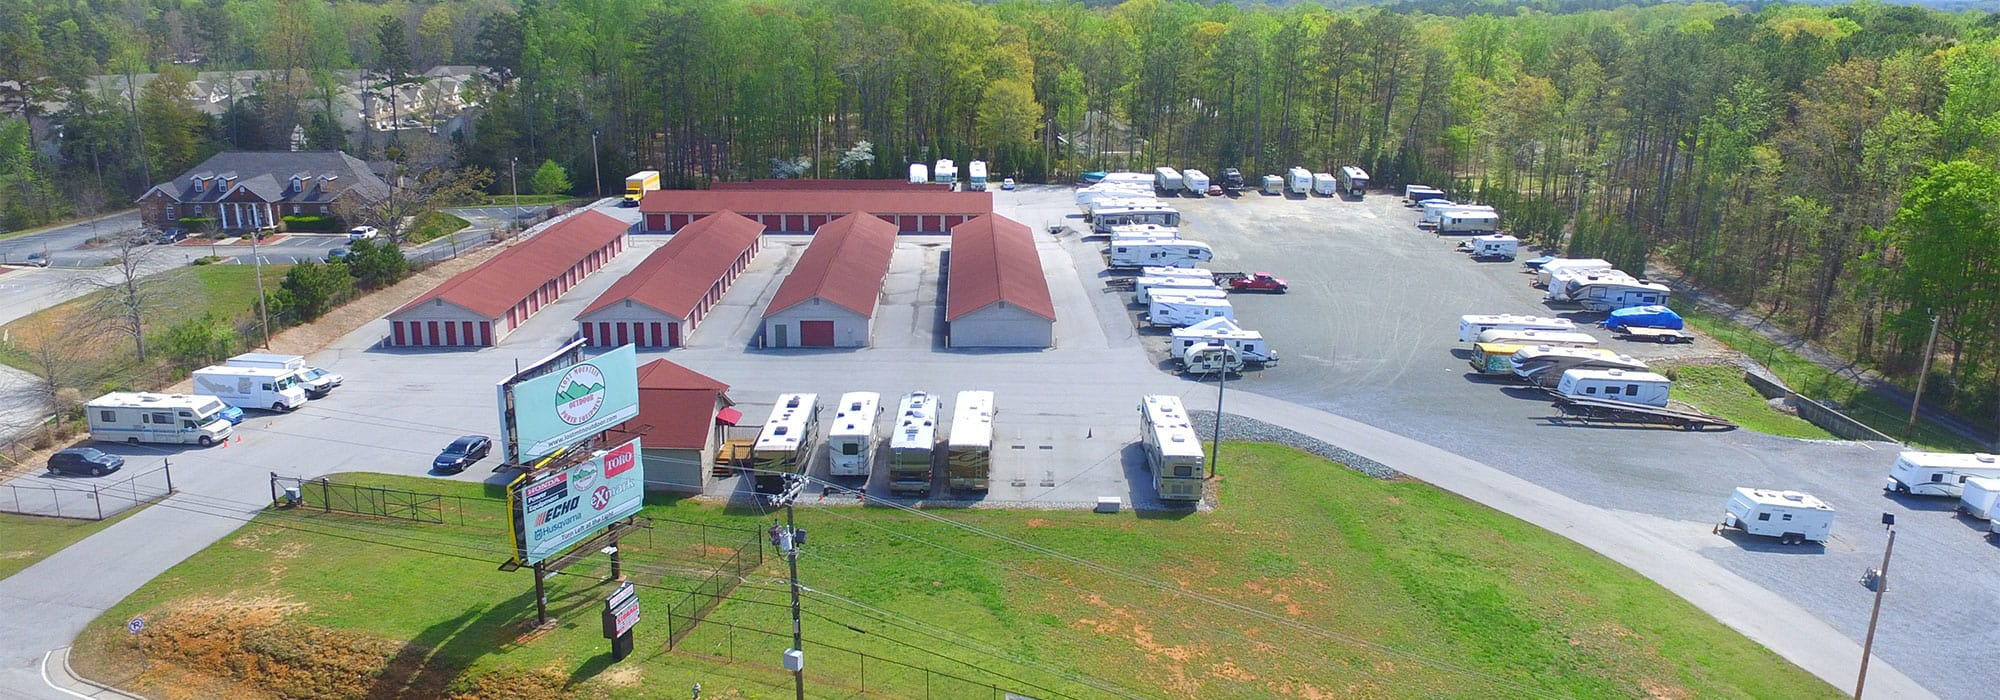 Aerial Shot Of Space Shop Self Storage In Hiram